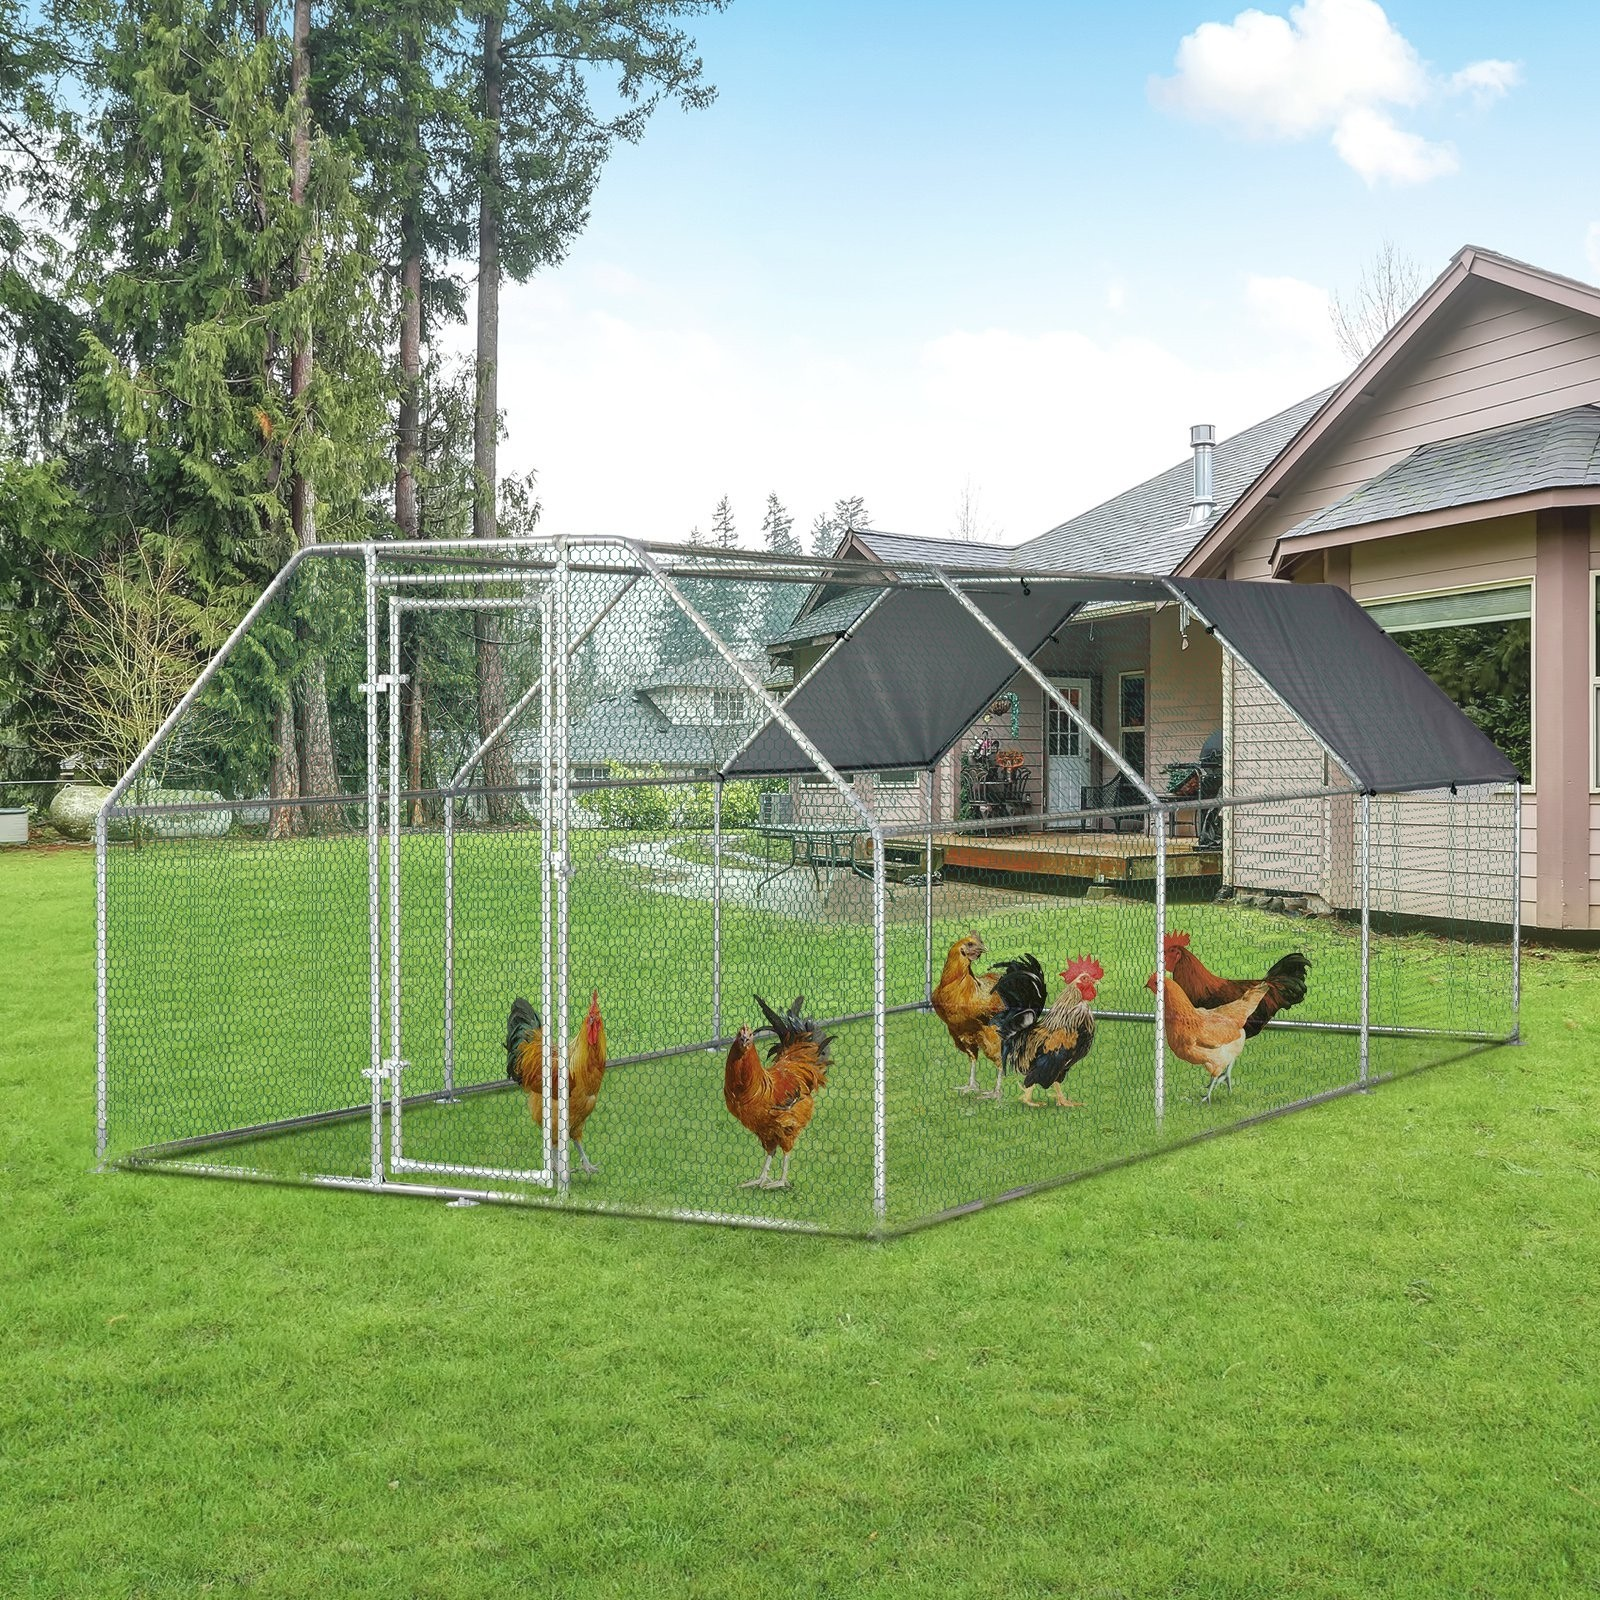 Sharma Galvanized Metal Chicken Coop Cage with Chicken Run